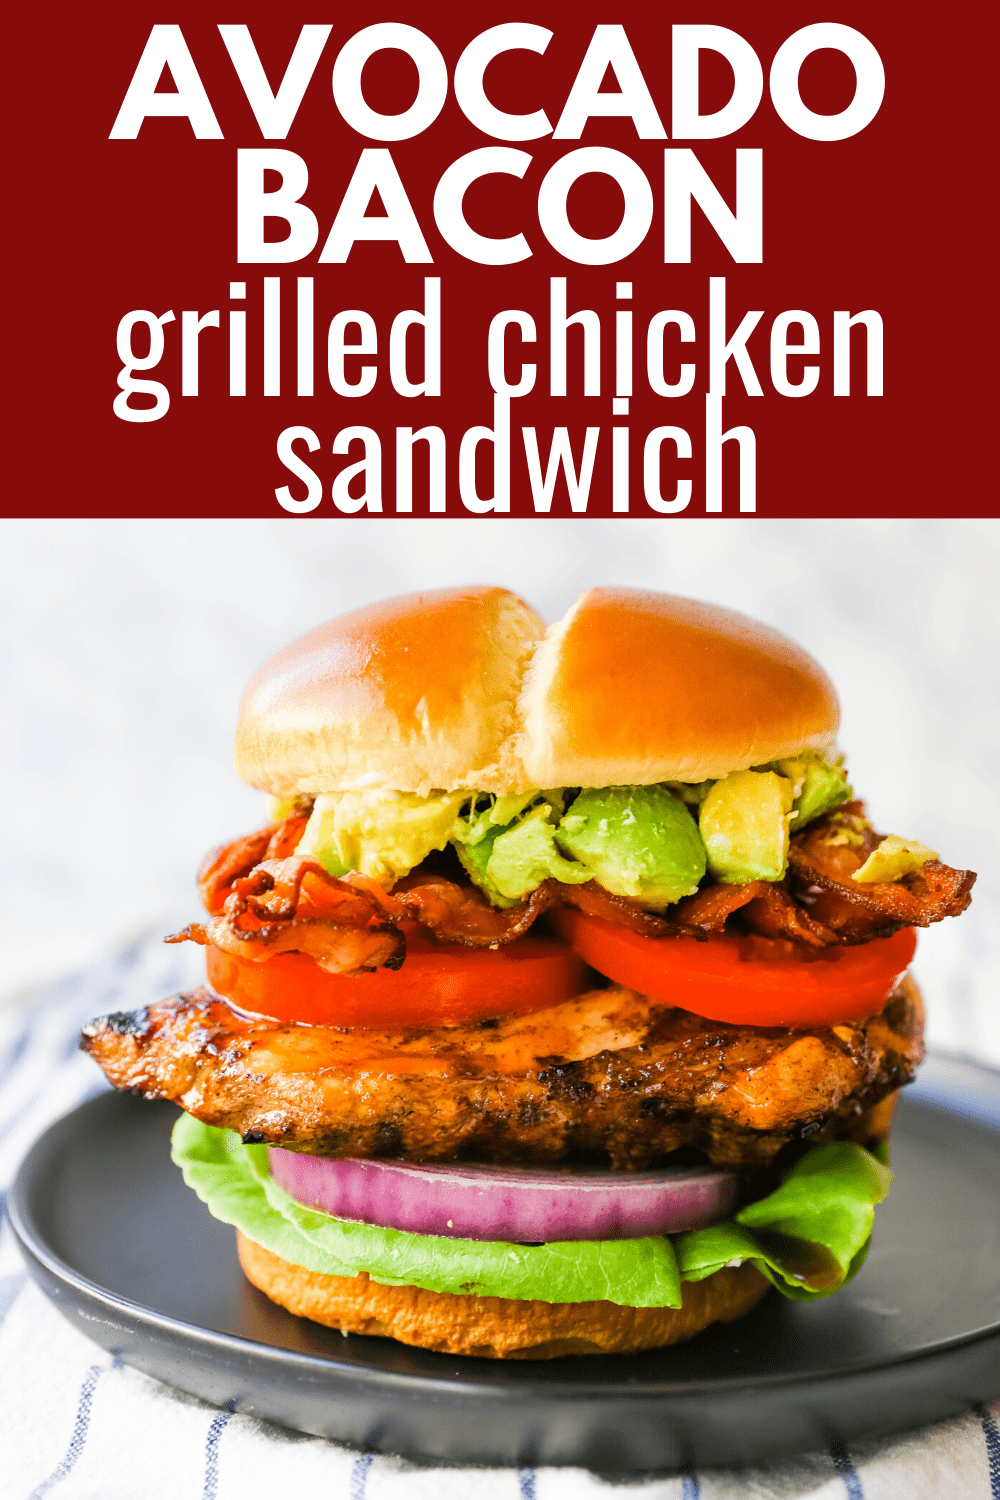 Avocado Bacon Grilled Chicken Sandwich